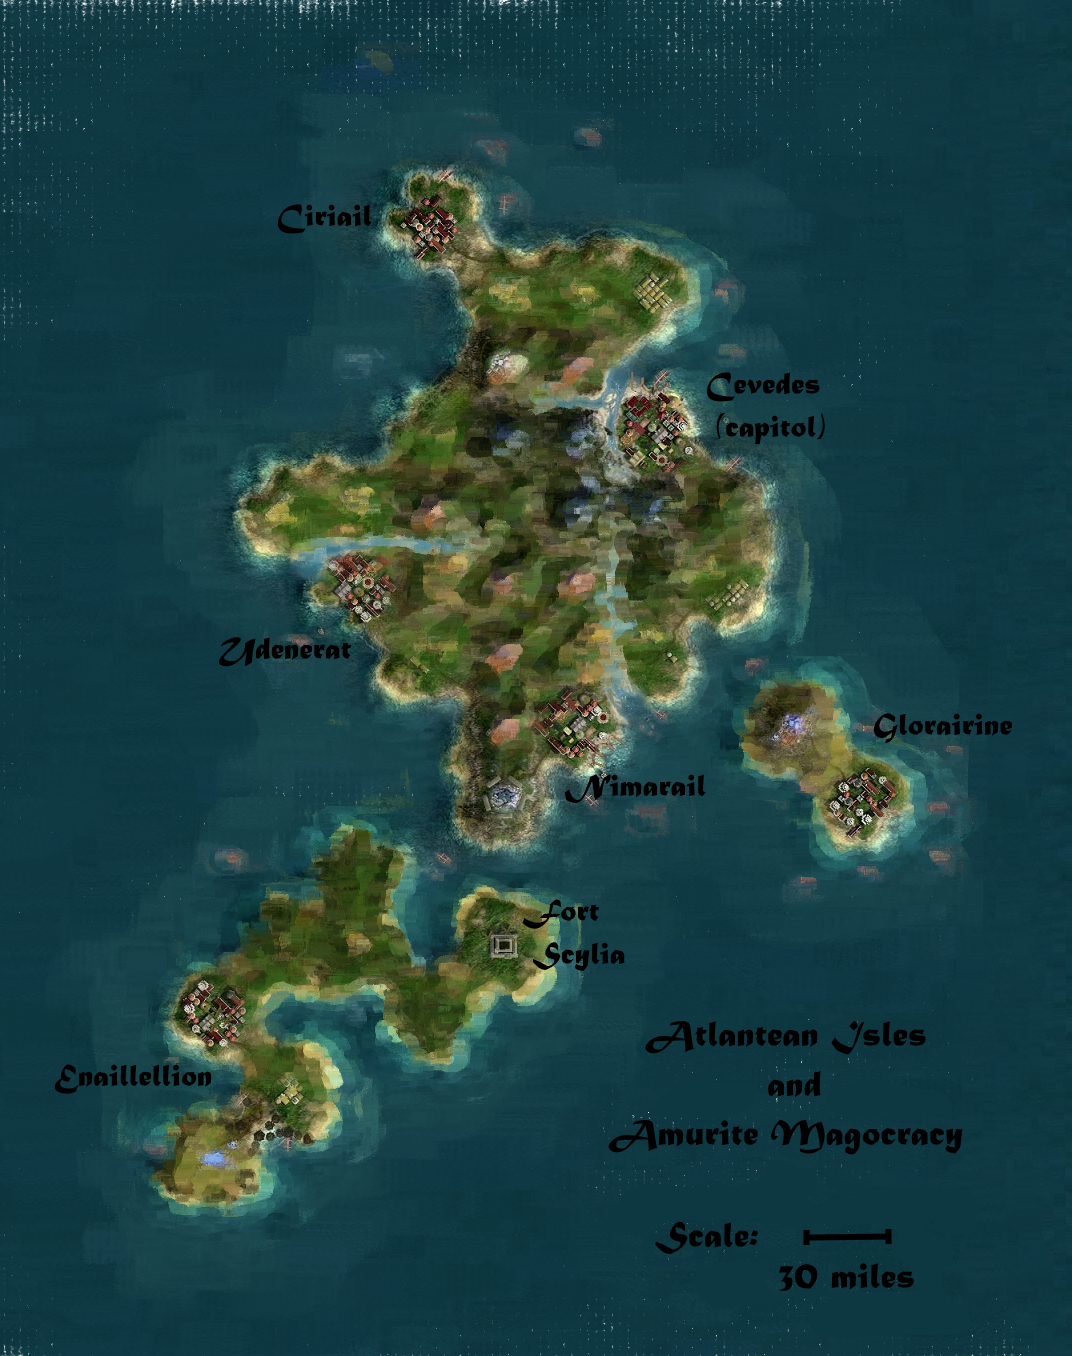 Arcanearth_Atlantean-Isles_Painting.png